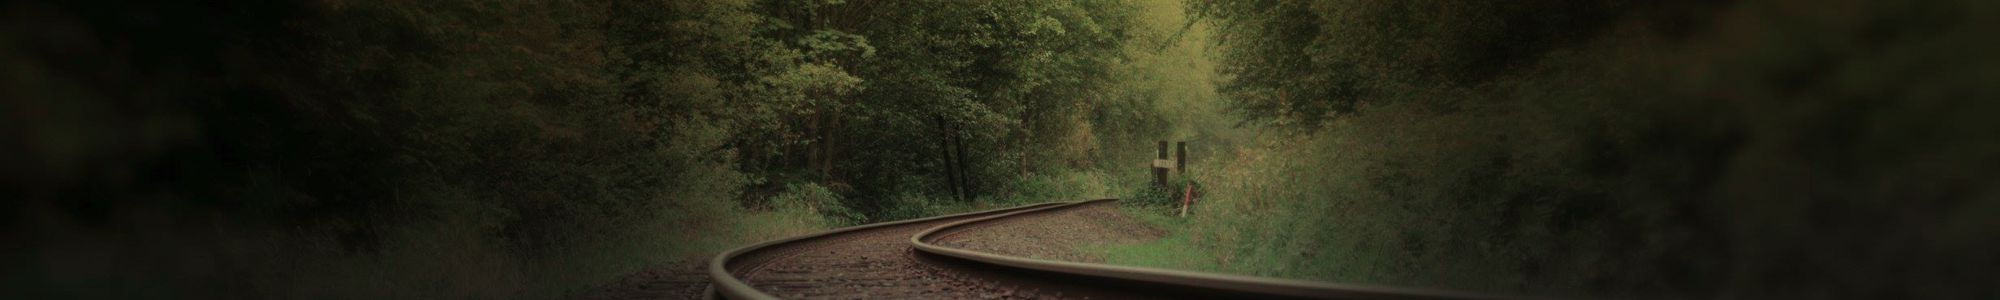 Rail track surrounded by trees